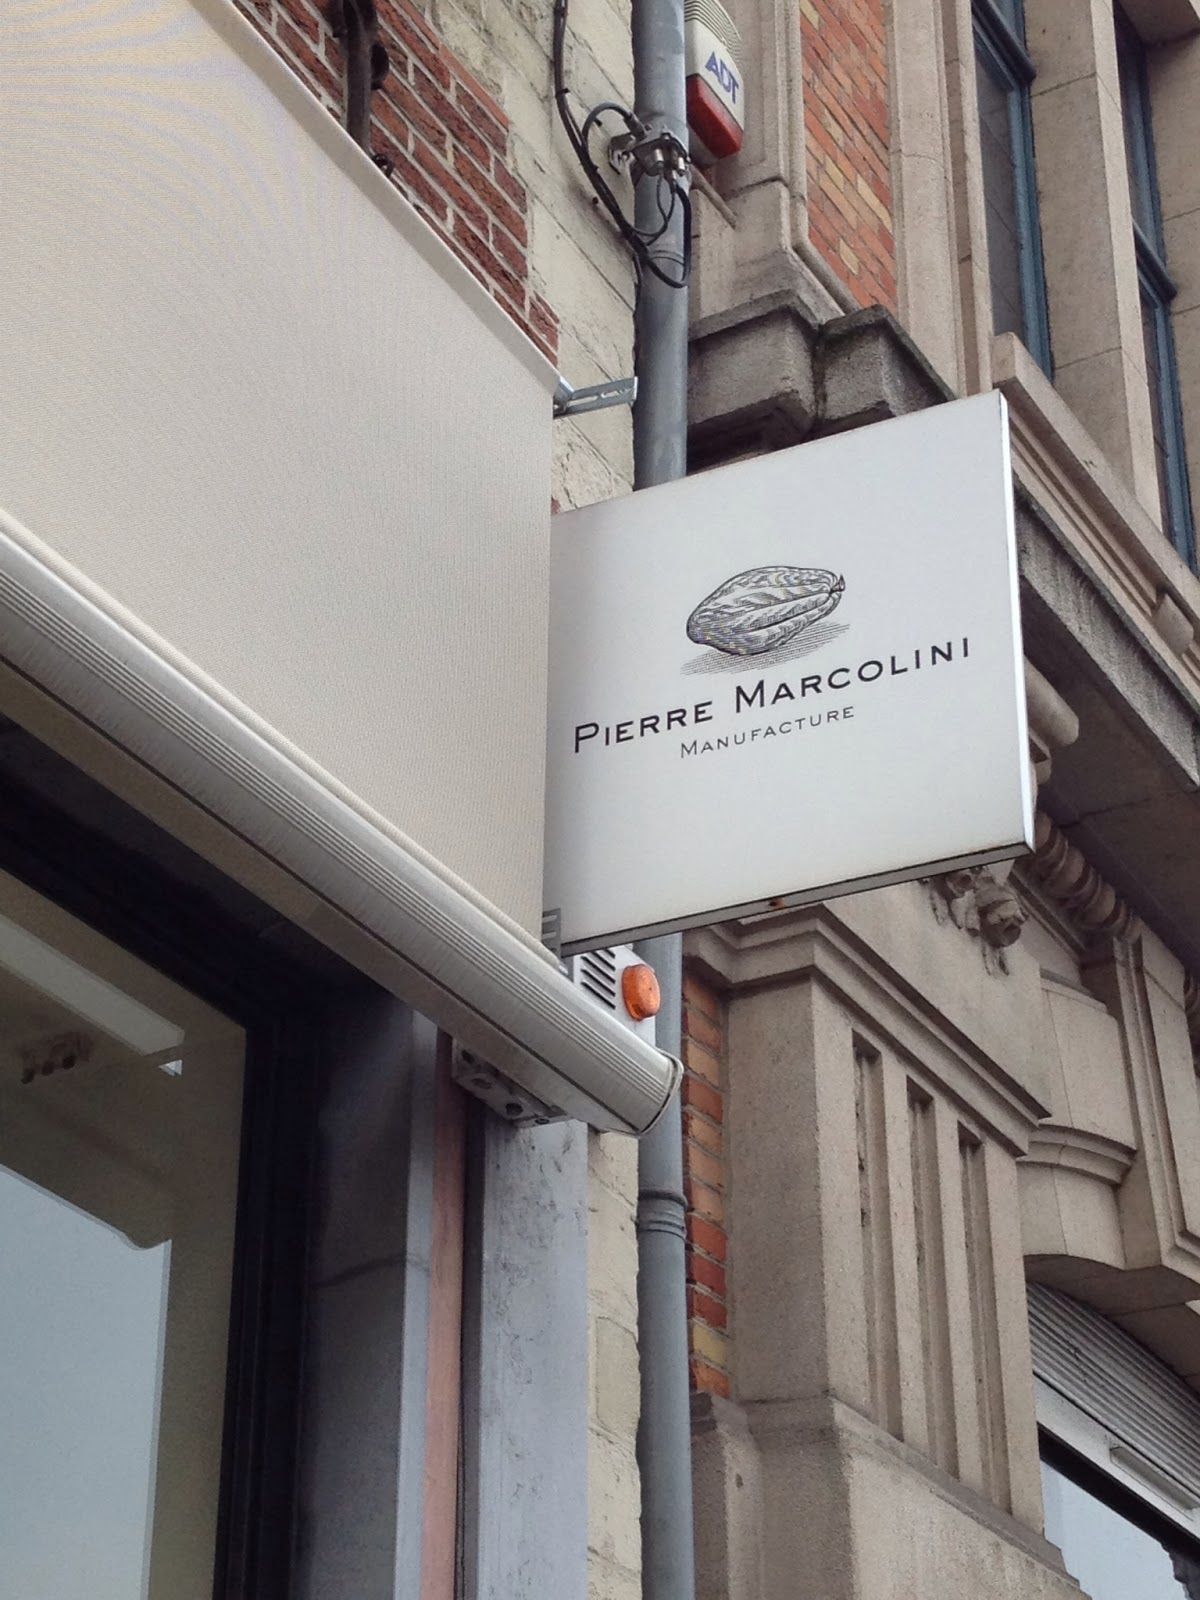 Brussels - Our chocolate tour took us to famed Pierre Marcolini